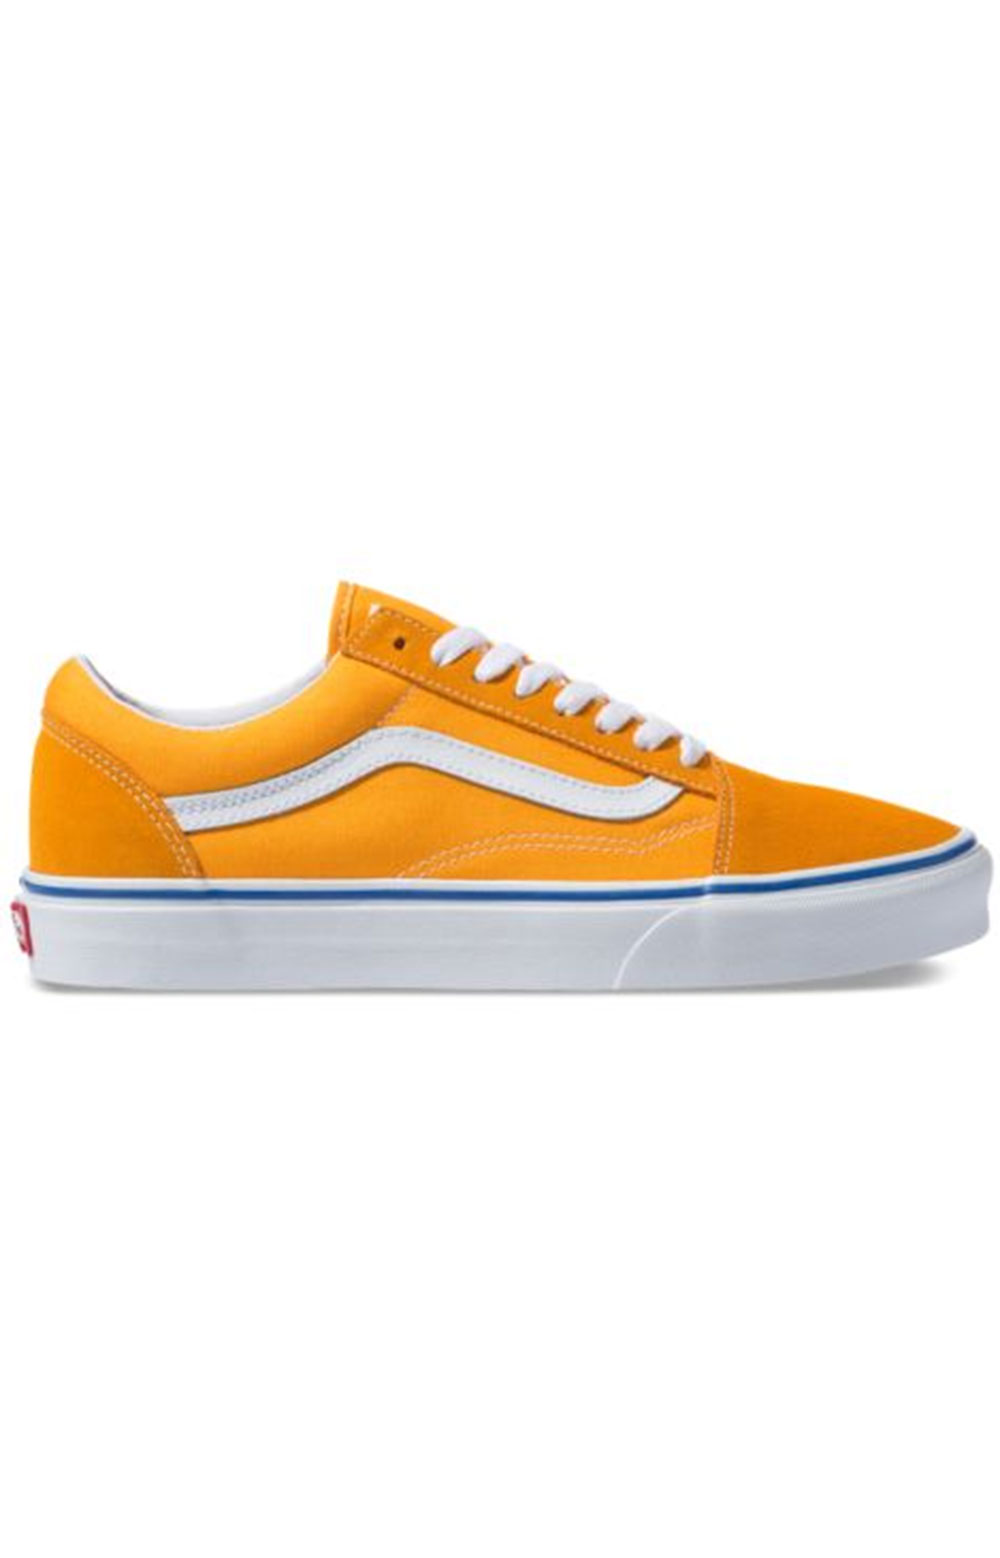 (8G1VRM1) Suede Canvas Old Skool Shoe - Zinnia/True White